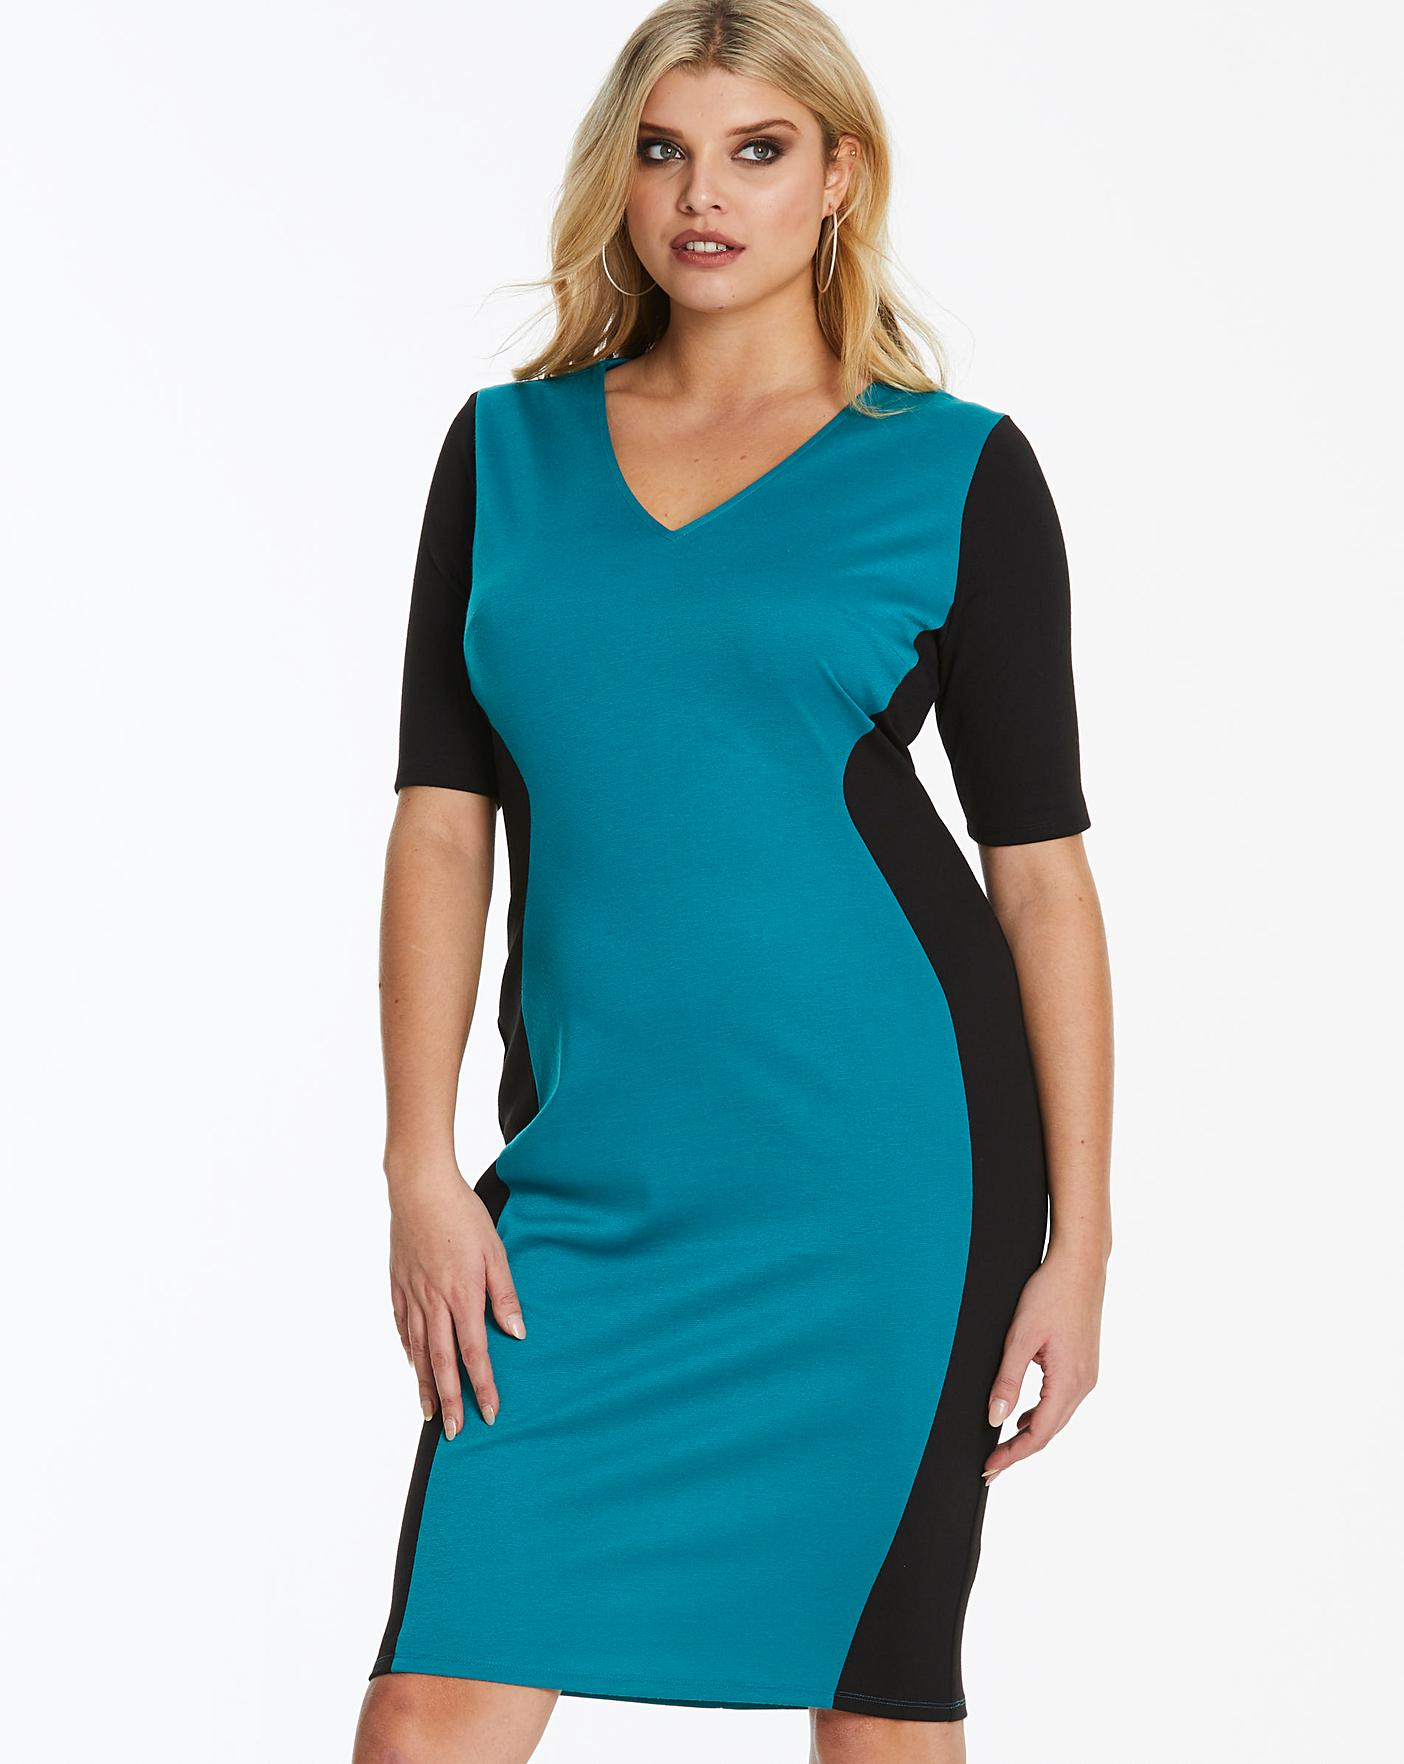 e2a902c346d0 Black/Teal V-Neck Illusion Bodycon Dress | Simply Be